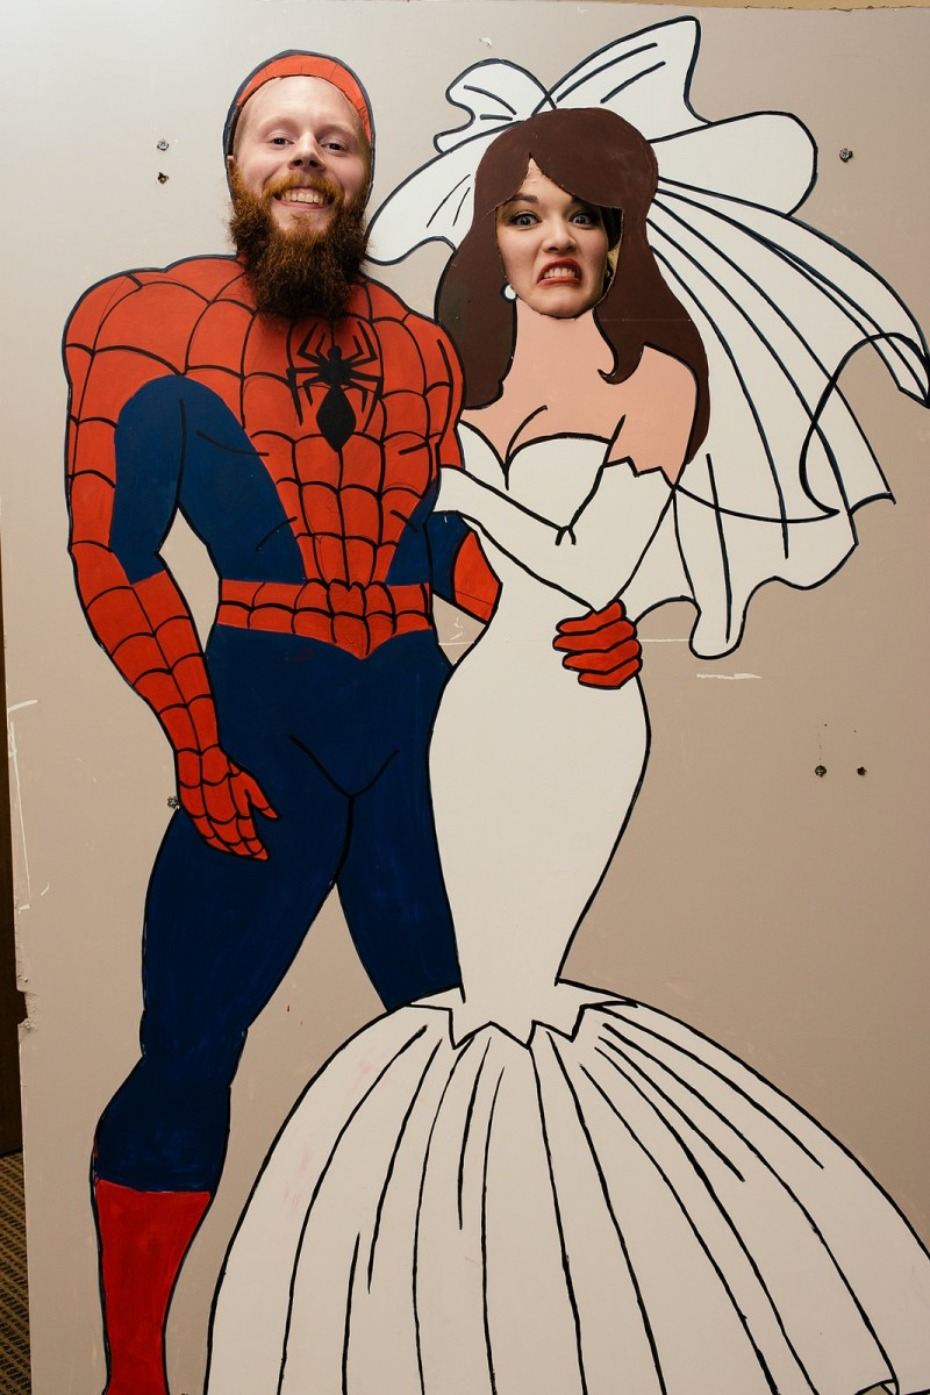 wedding-photo-face-cut-out-photo-booth